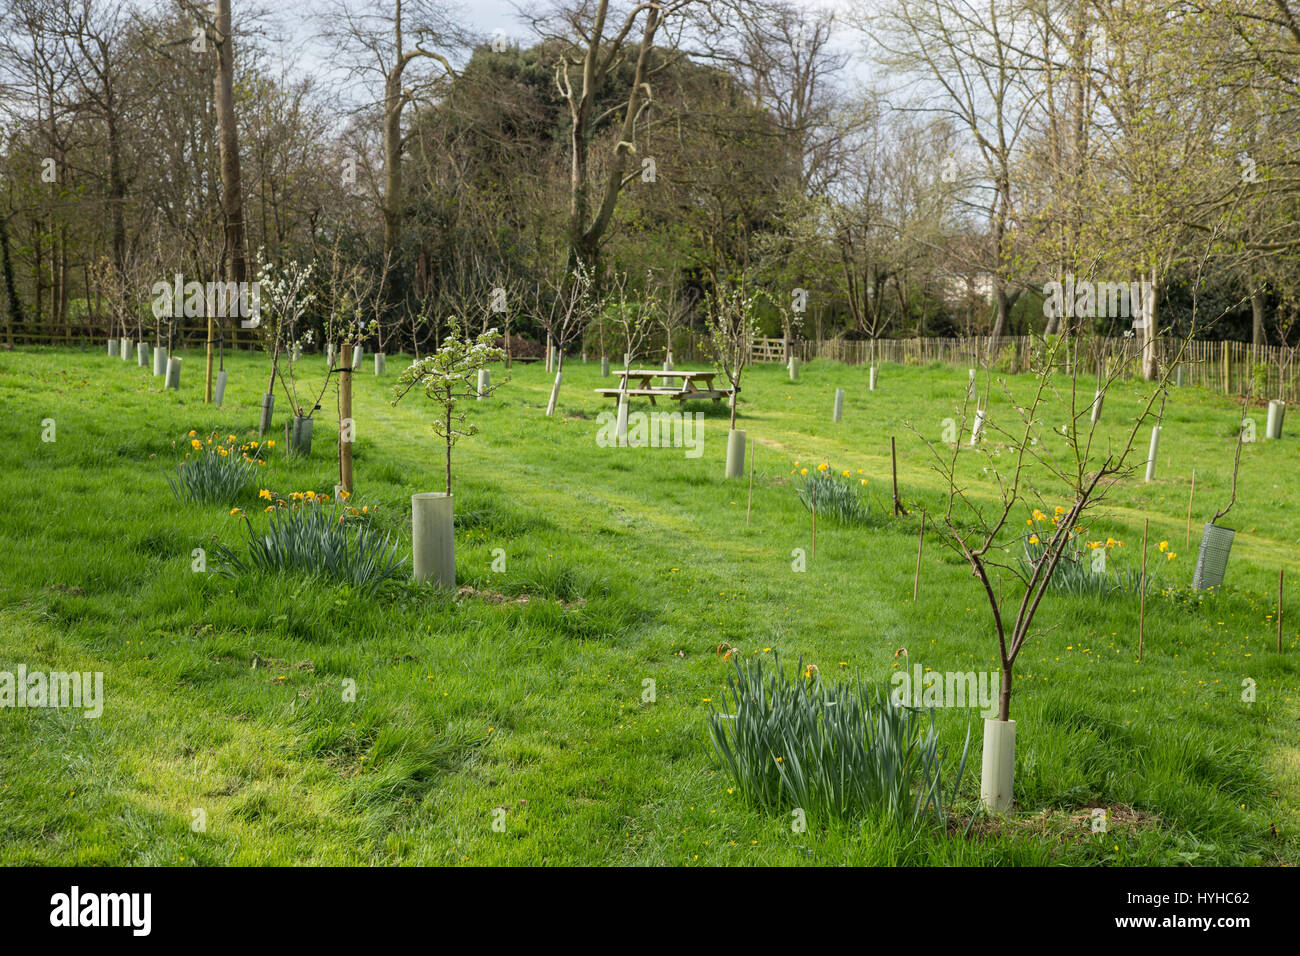 A community orchard in The Byes, in Sidmouth, with fruit trees, benches, and daffodils. - Stock Image